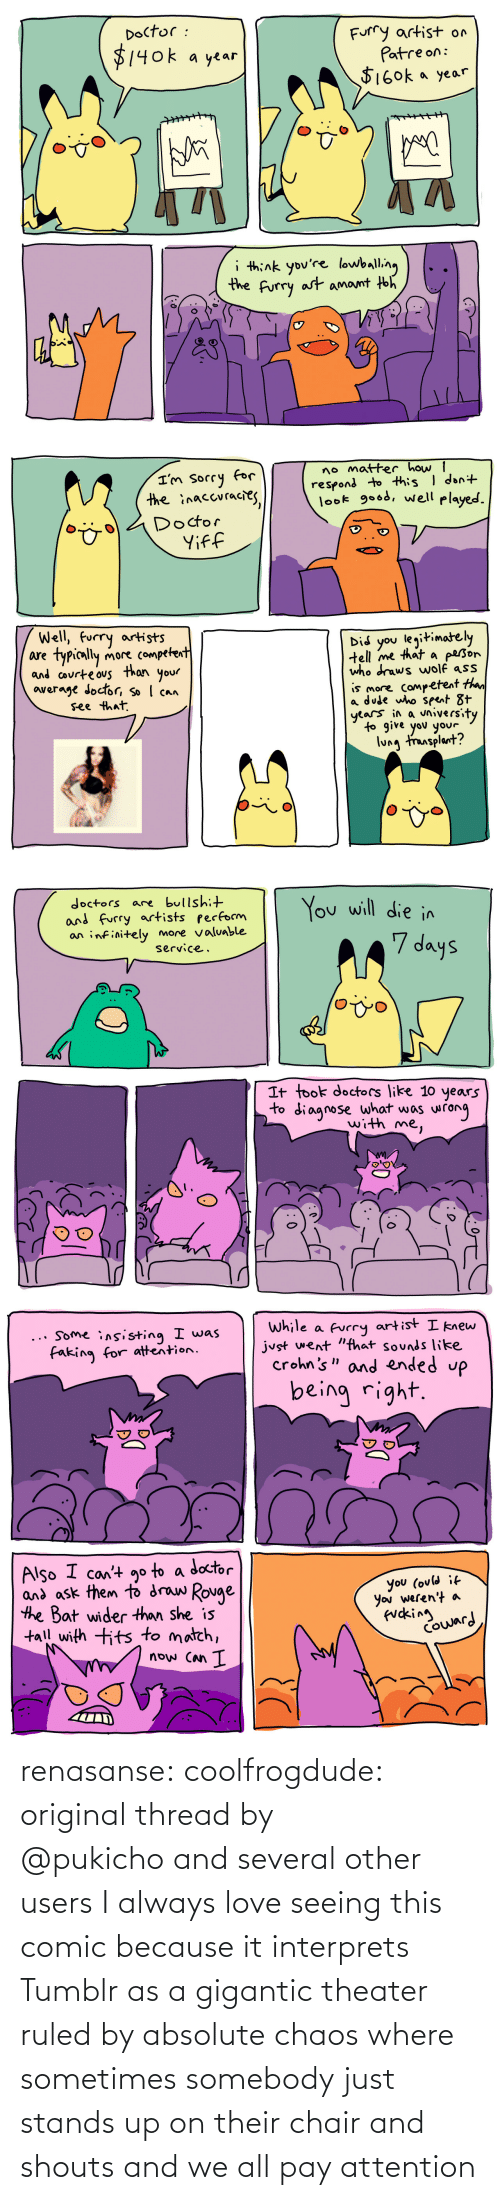 Original: renasanse: coolfrogdude: original thread by @pukicho and several other users I always love seeing this comic because it interprets Tumblr as a gigantic theater ruled by absolute chaos where sometimes somebody just stands up on their chair and shouts and we all pay attention